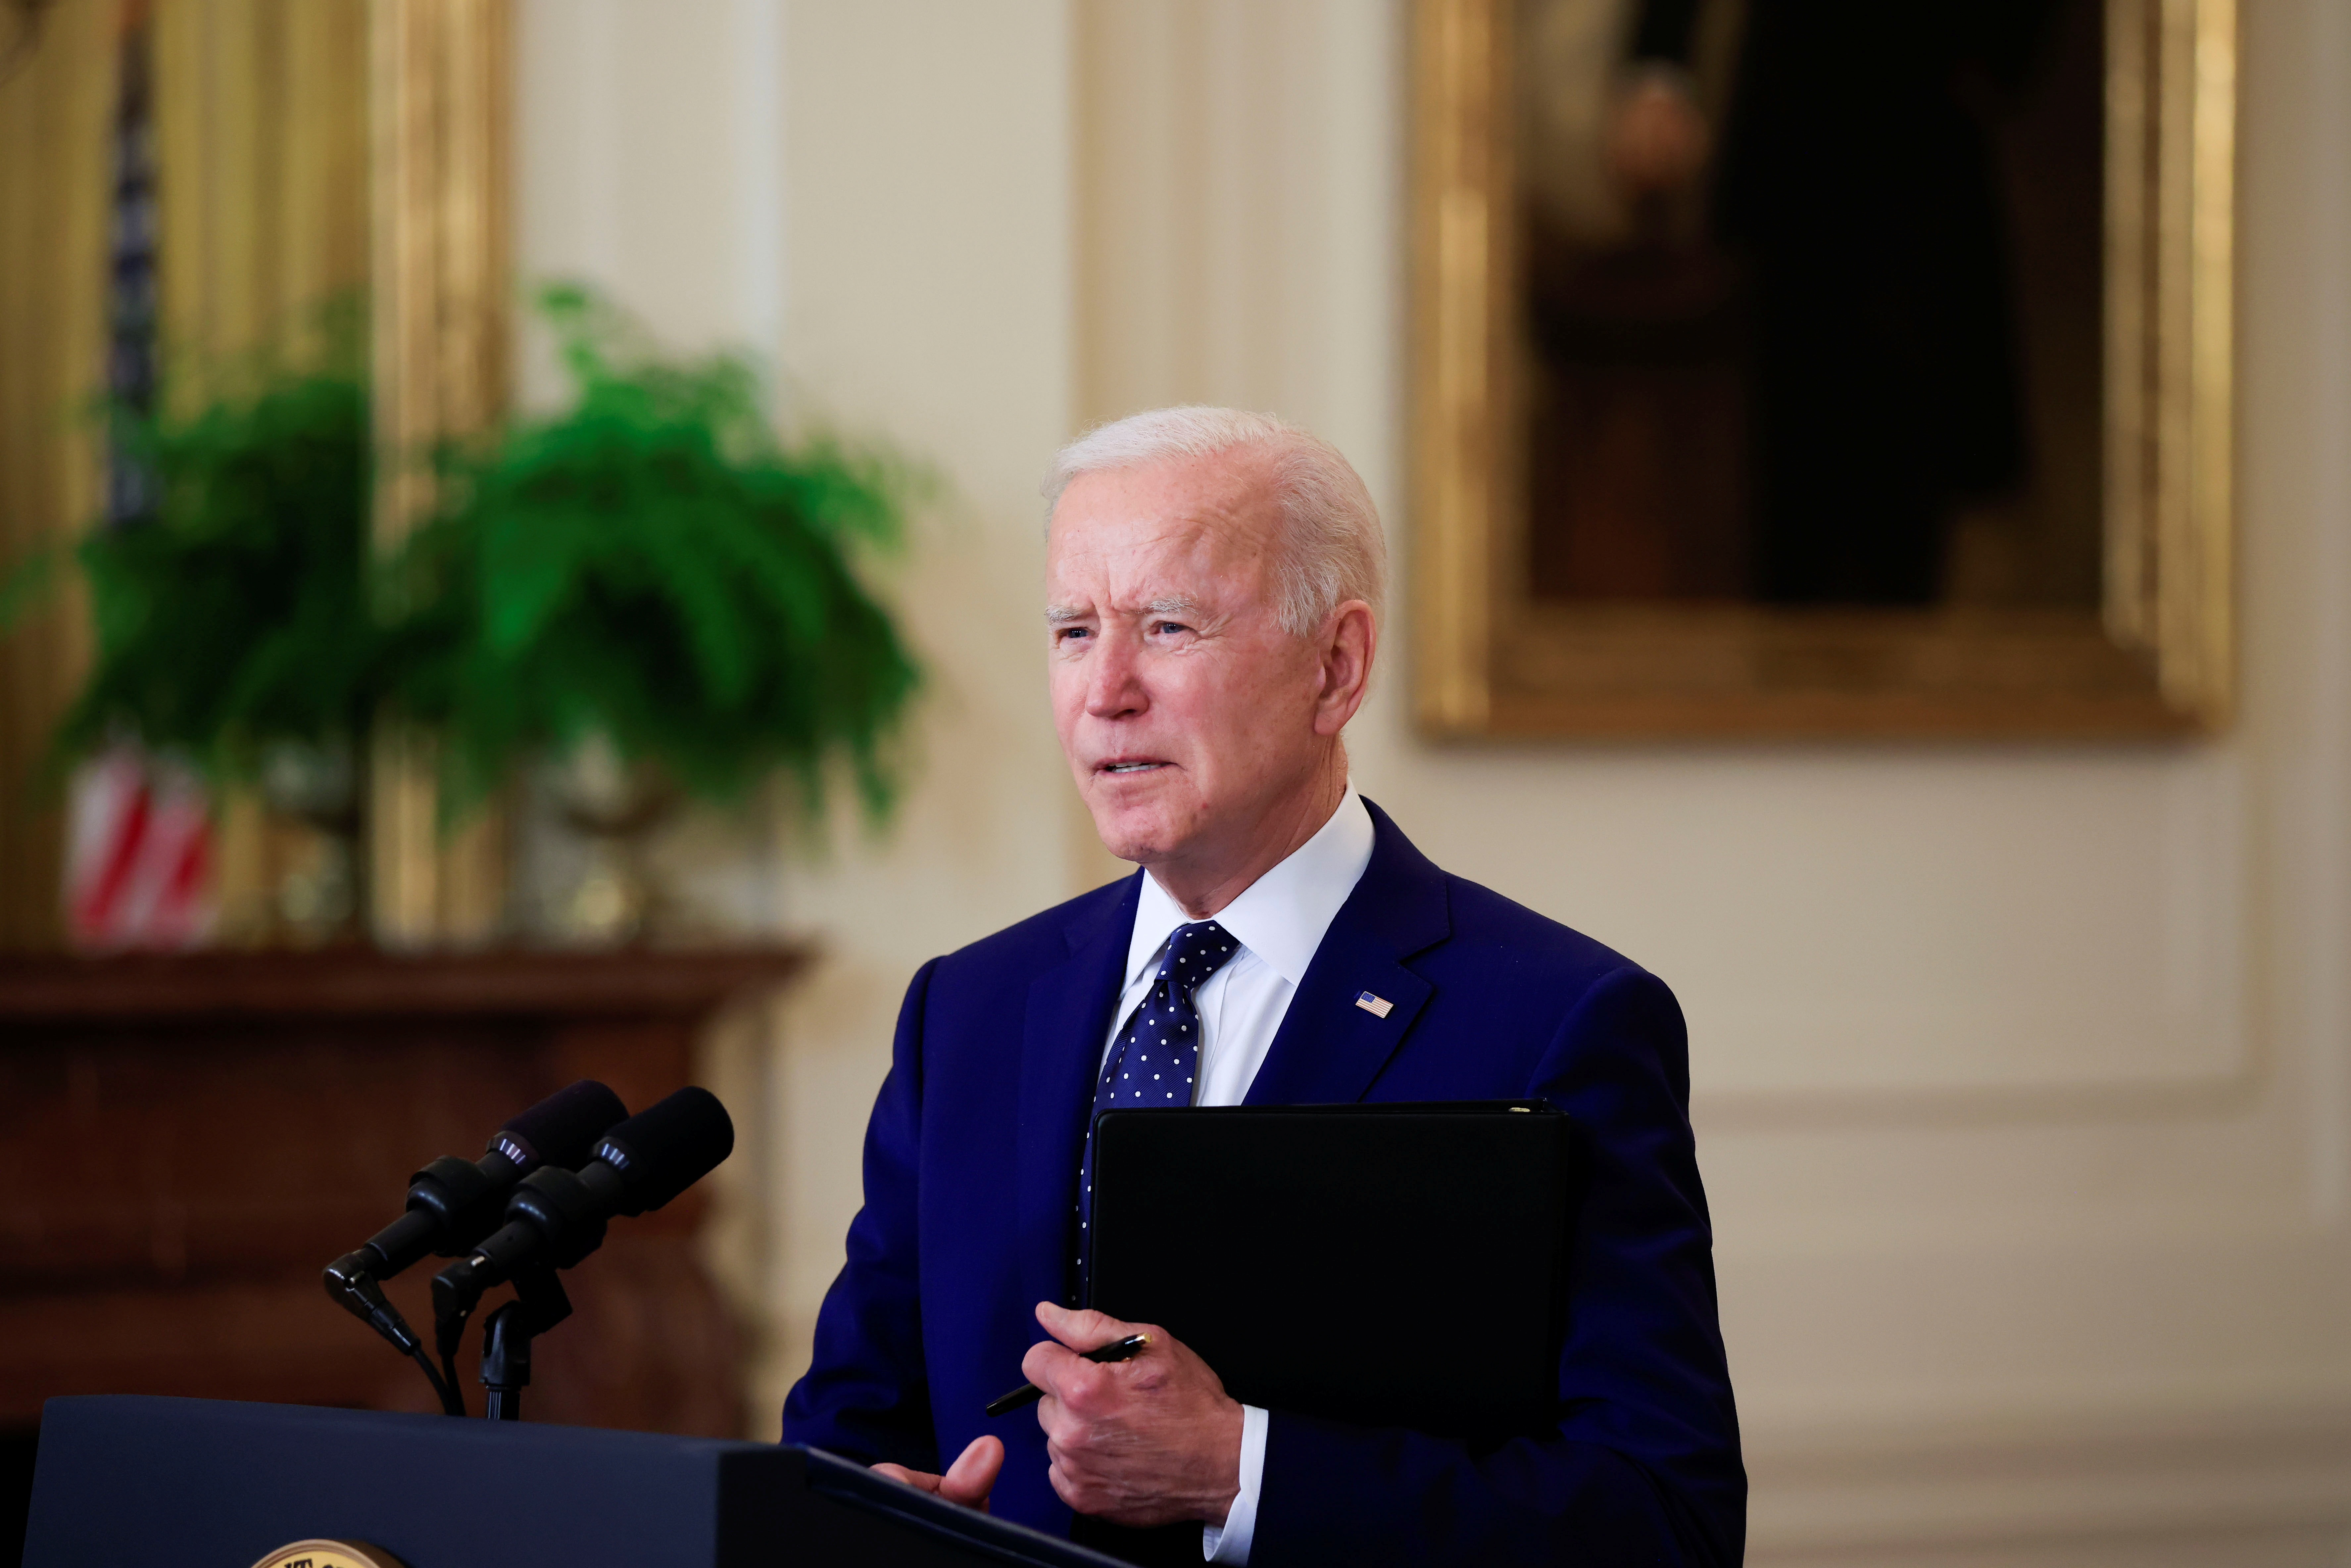 U.S. President Joe Biden delivers remarks on Russia in the East Room at the White House in Washington, U.S., April 15, 2021. REUTERS/Tom Brenner